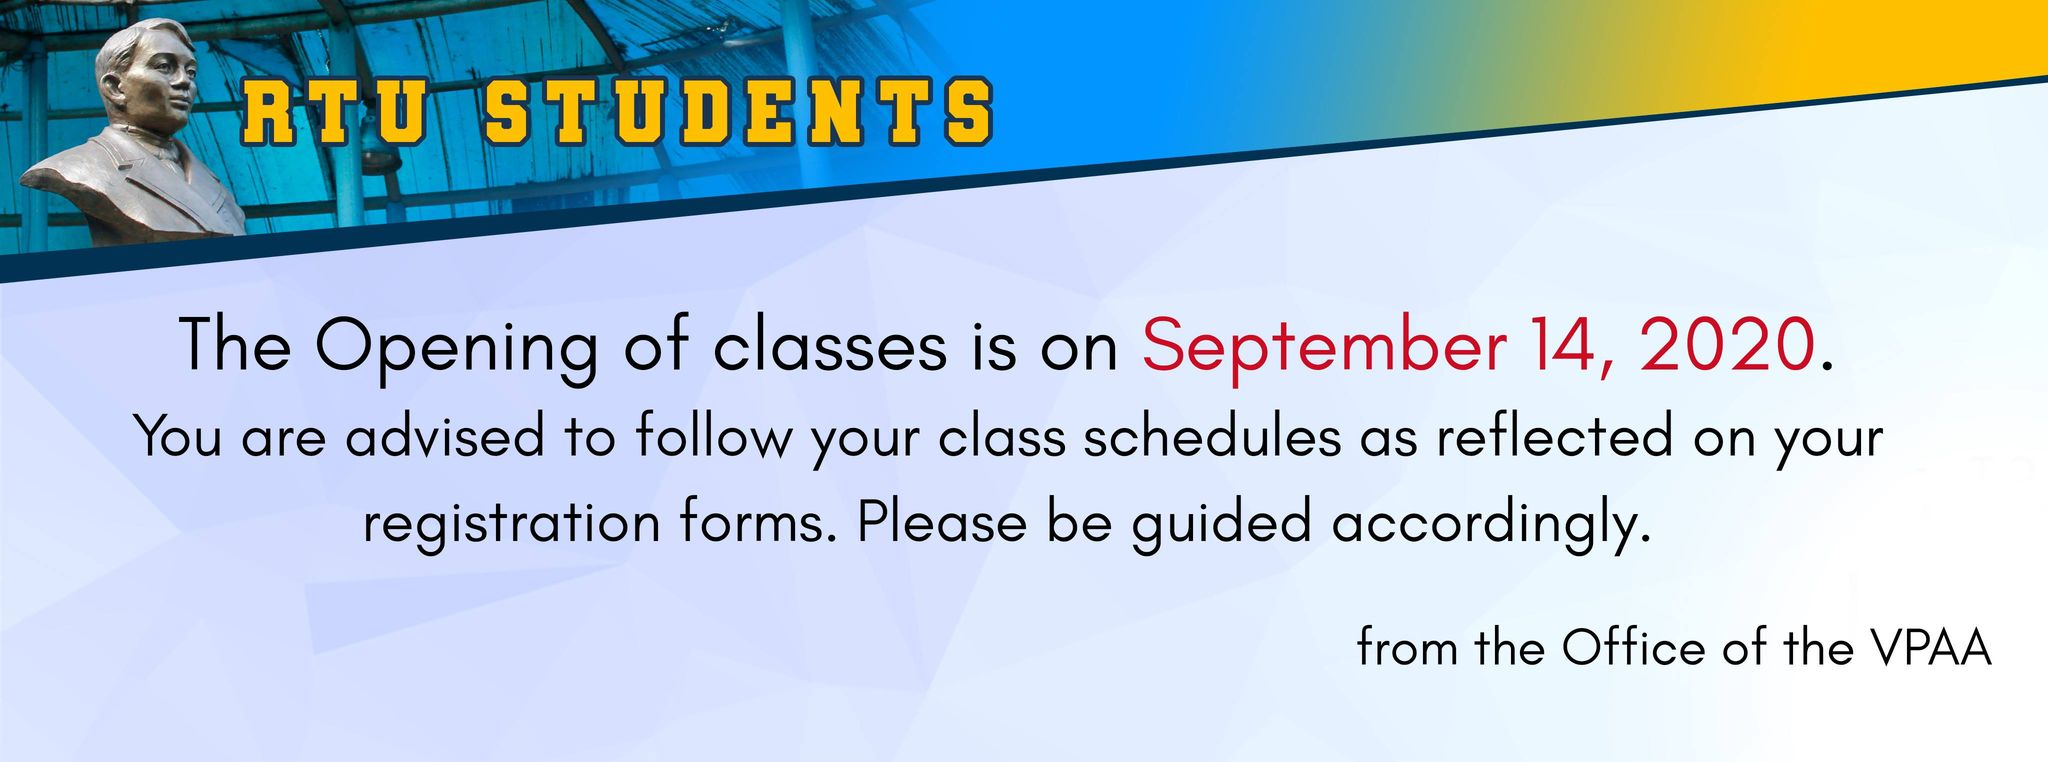 THE OPENING OF CLASSES IS ON SEPTEMBER 14, 2020